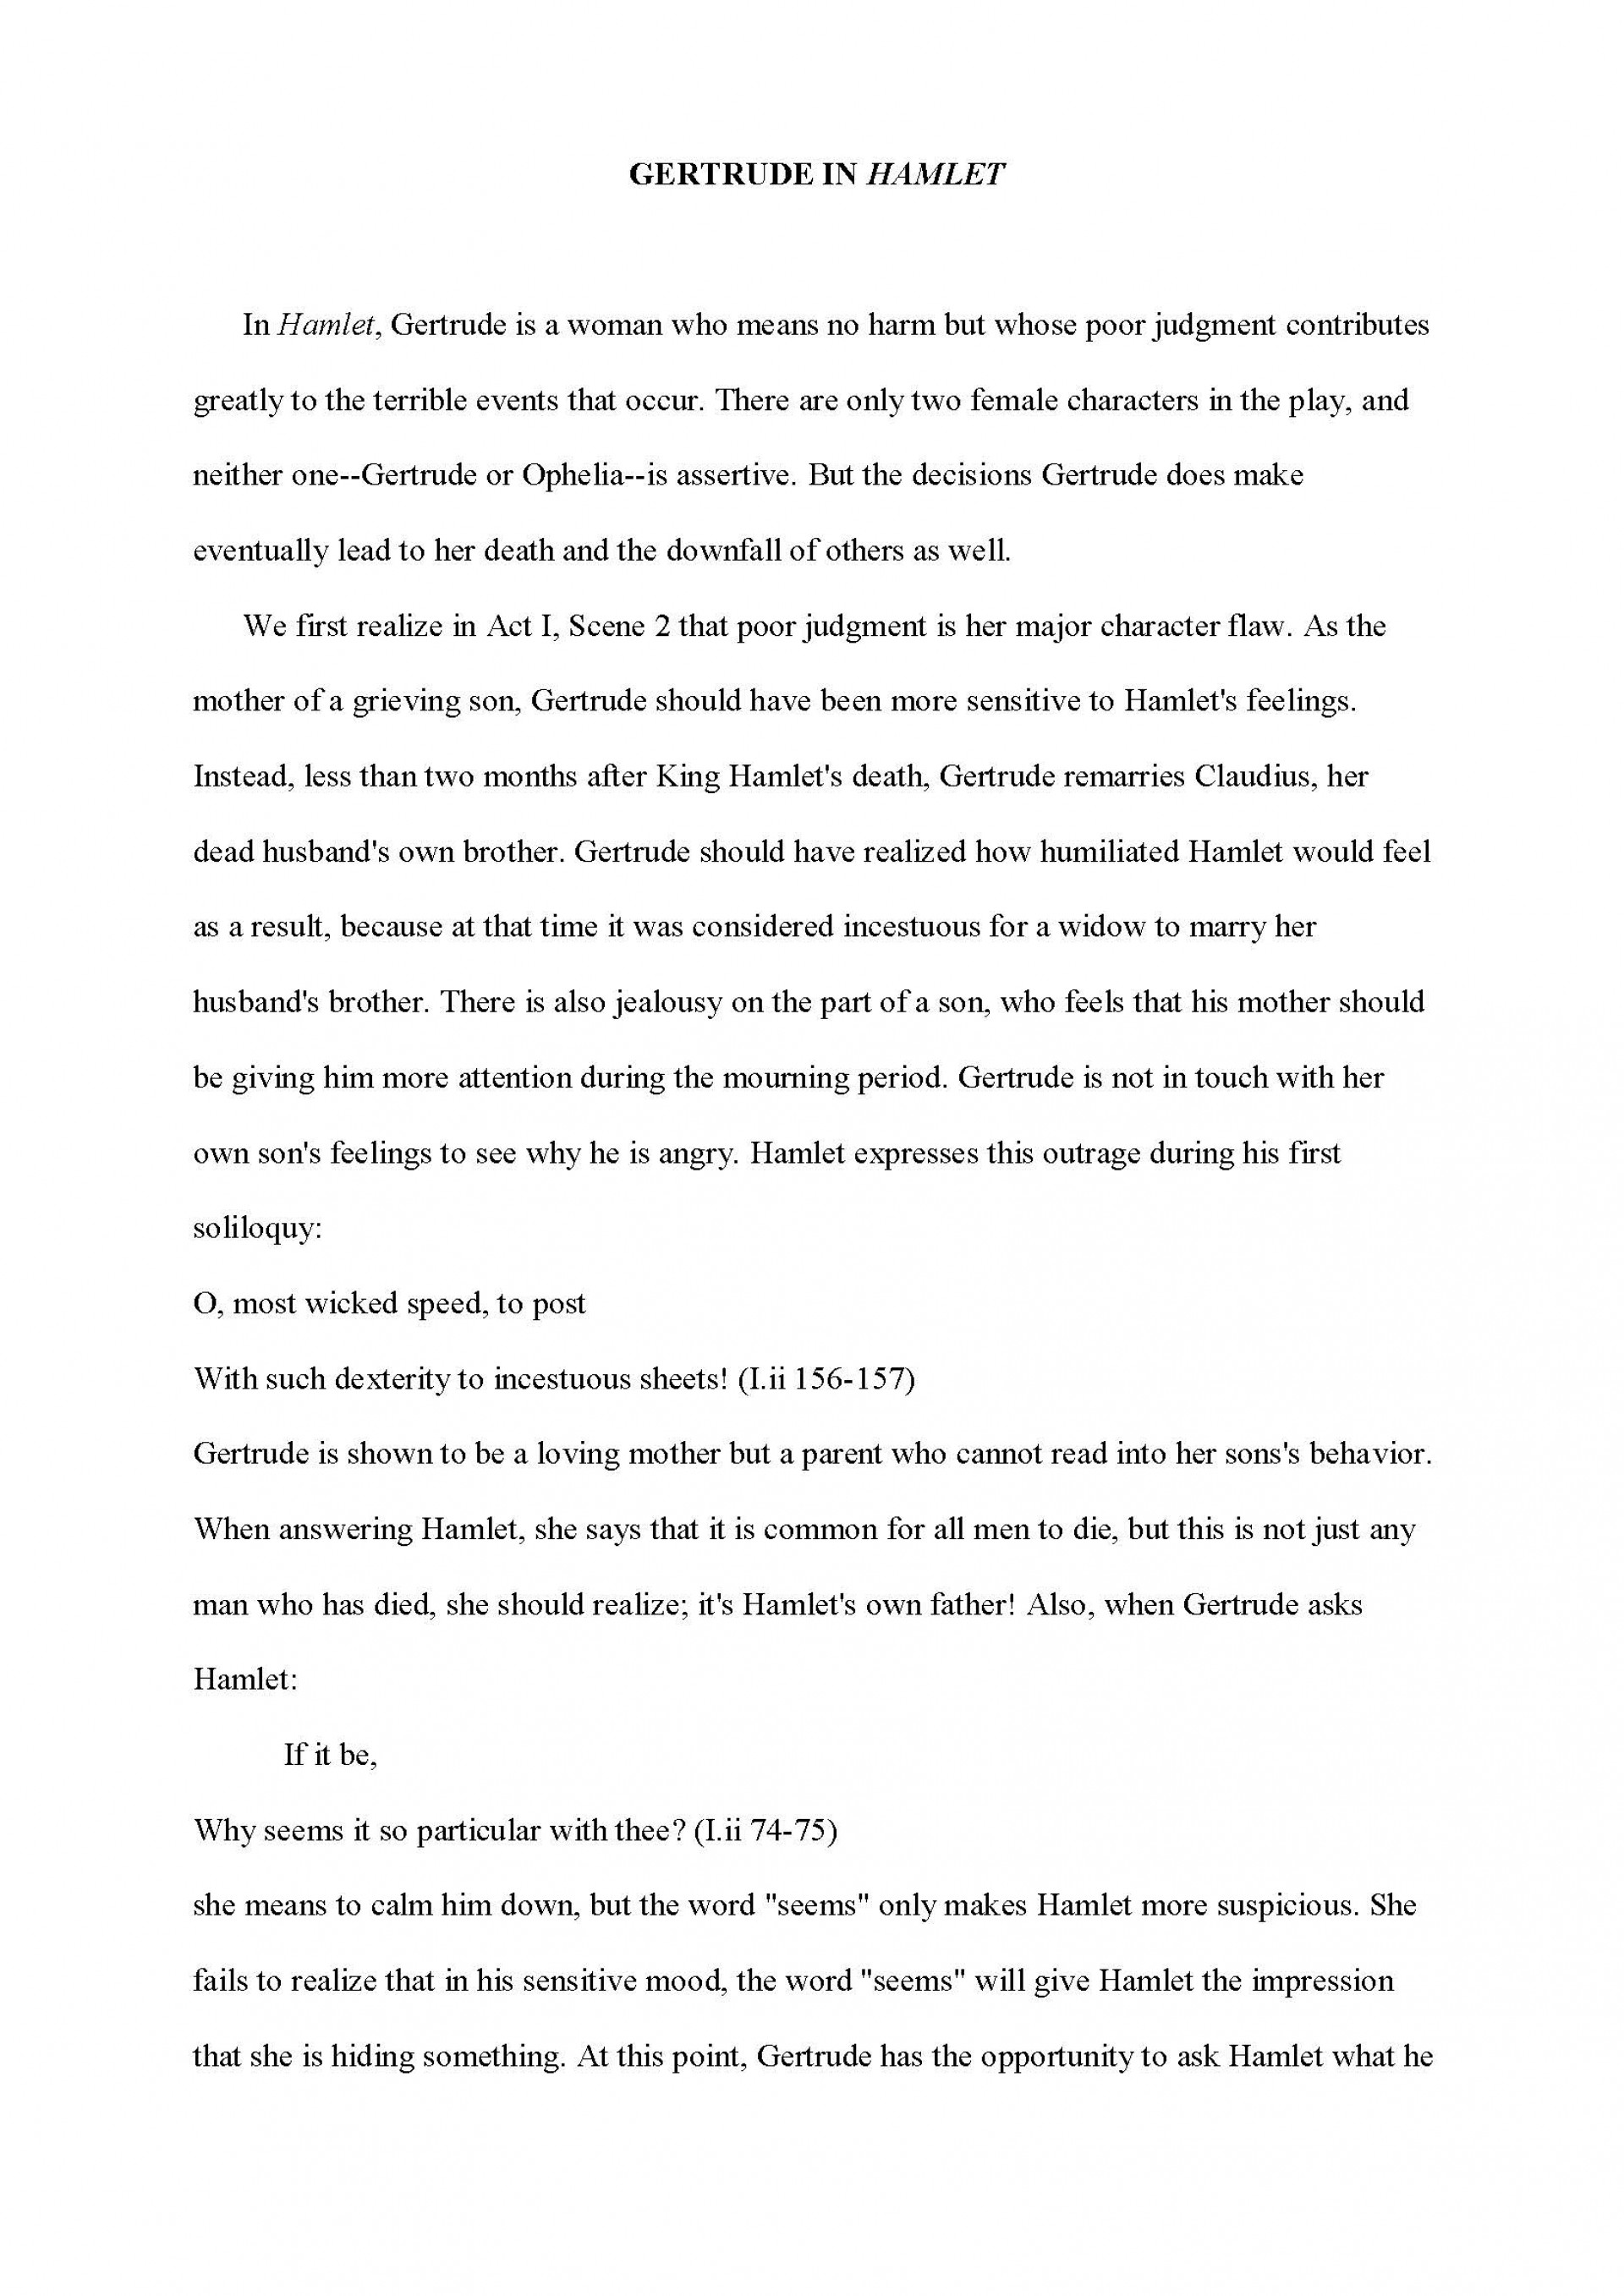 014 Analysis Essay Sample Example Literary Excellent Criticism On The Great Gatsby Ideas Conclusion 1920